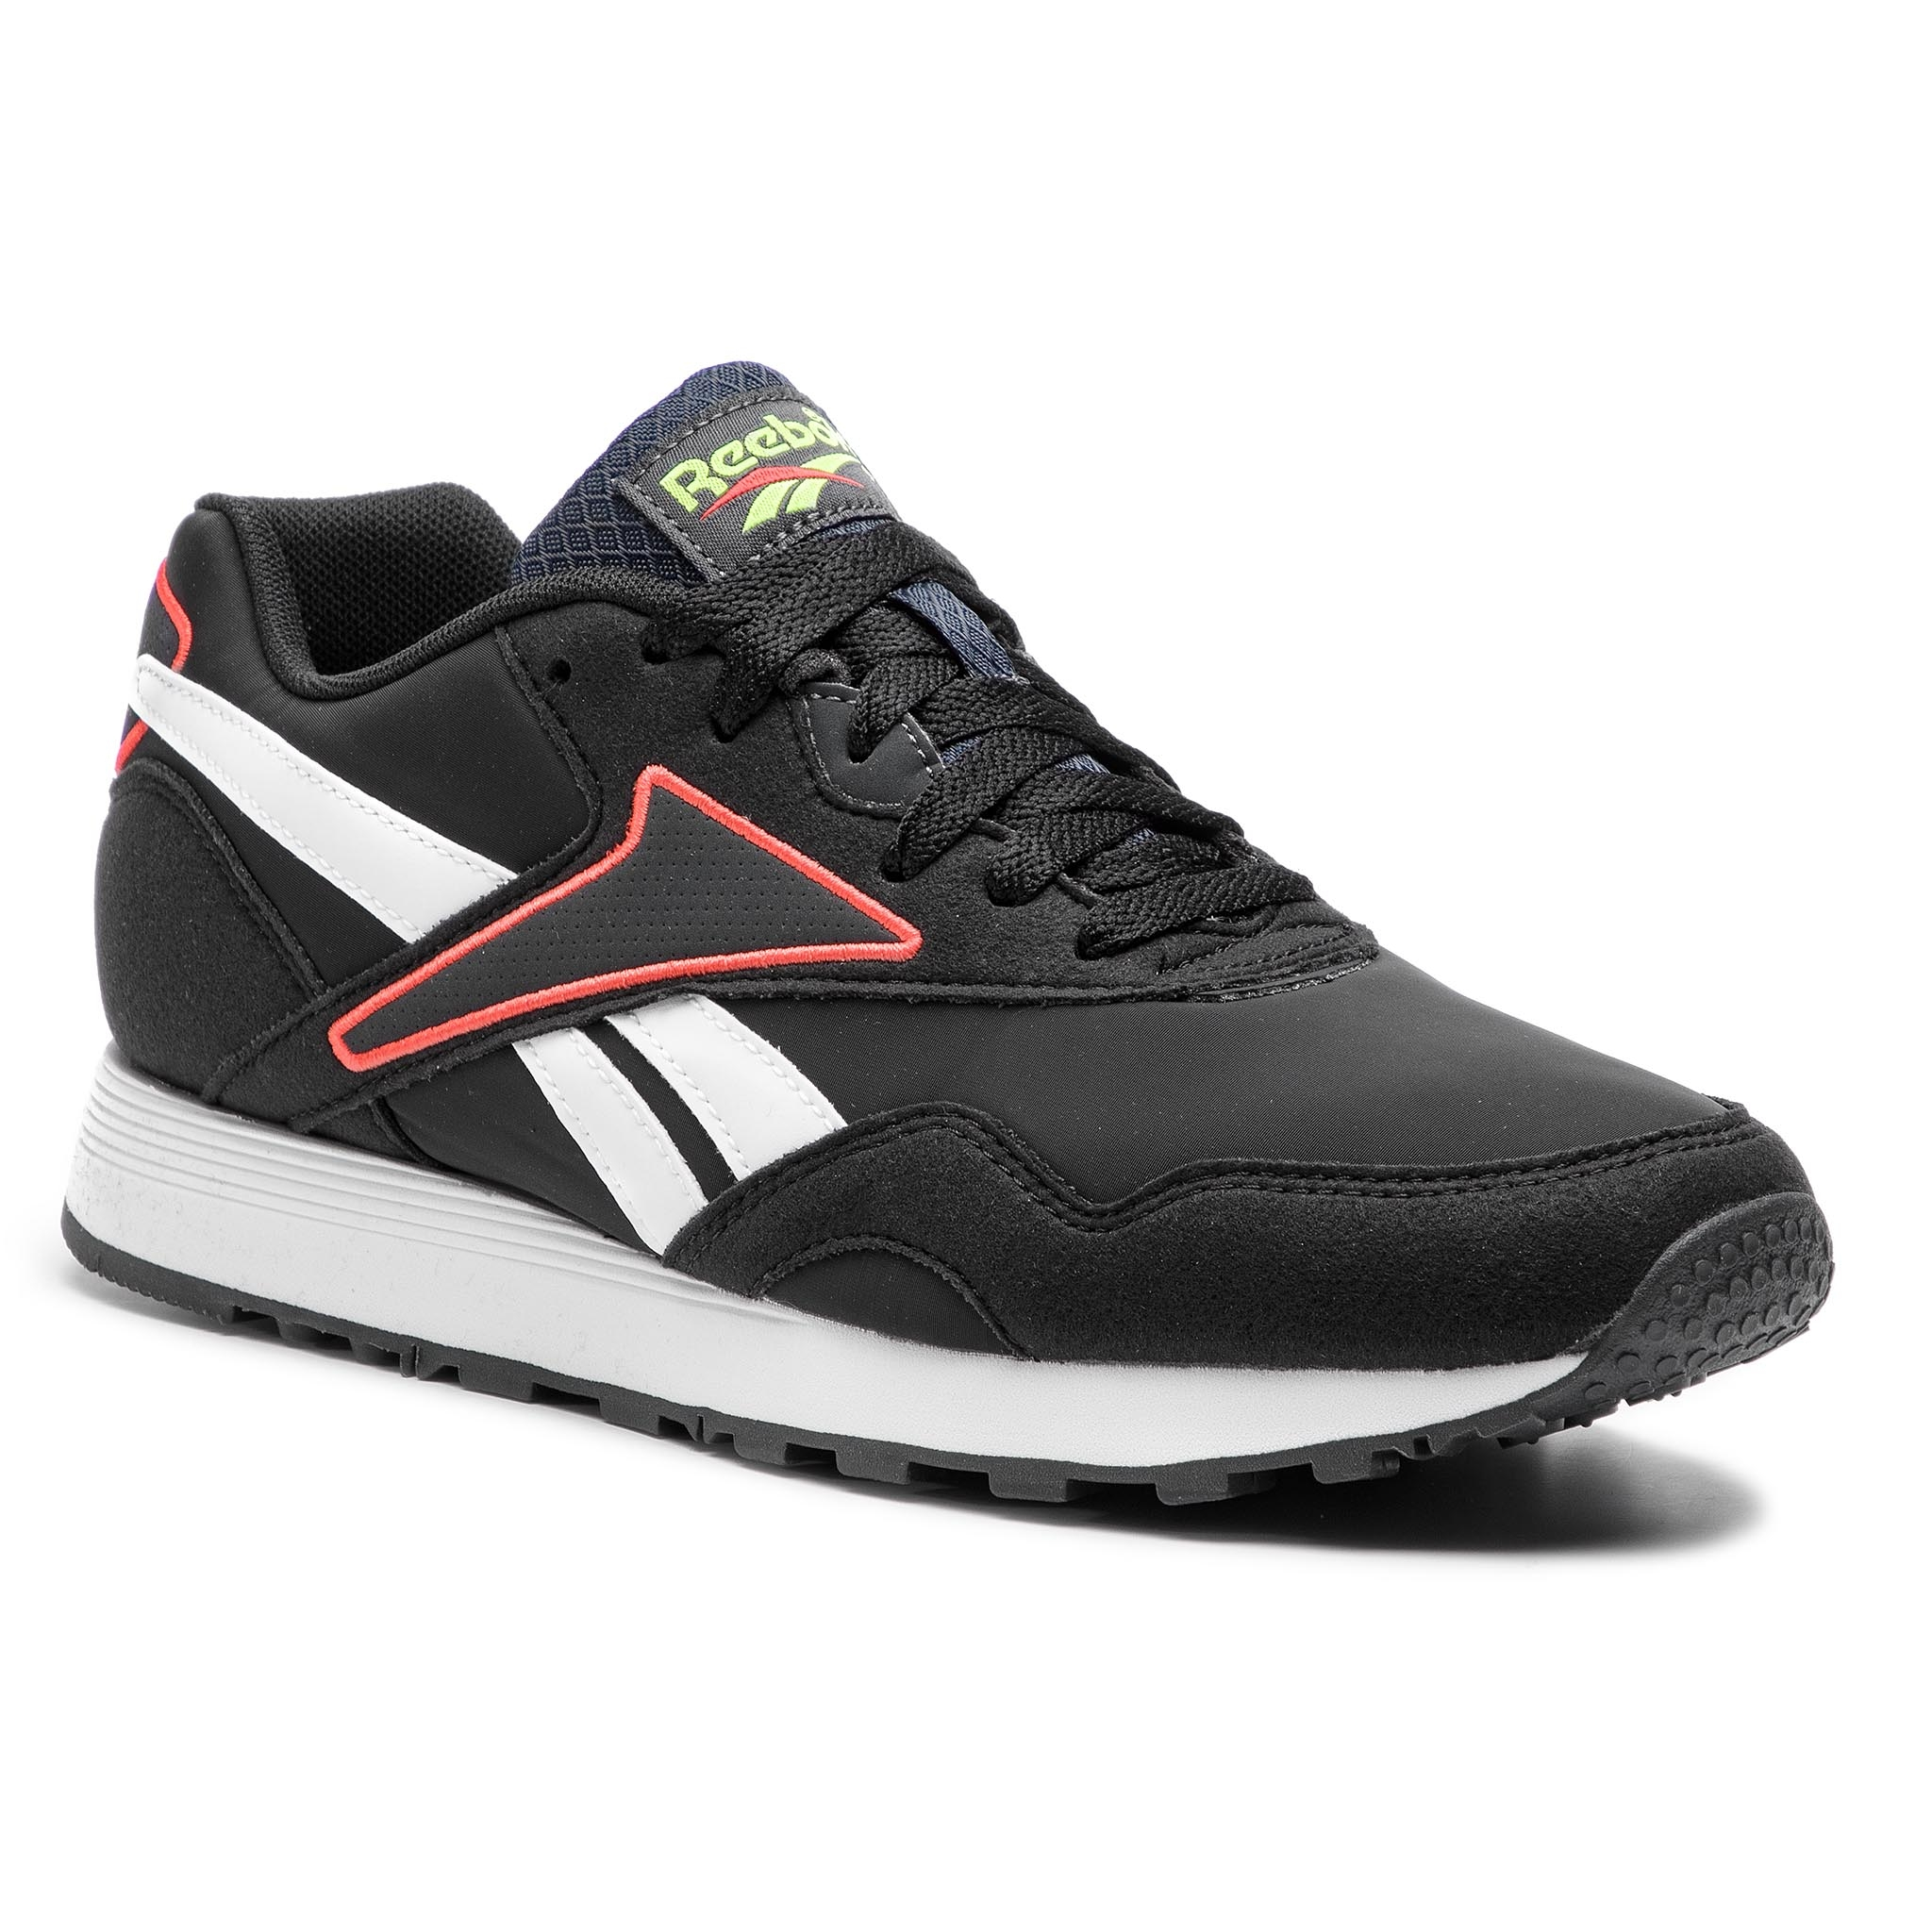 Pantofi Reebok - Rapide Mu CN7521 Black/White/Grey/Red/Lime